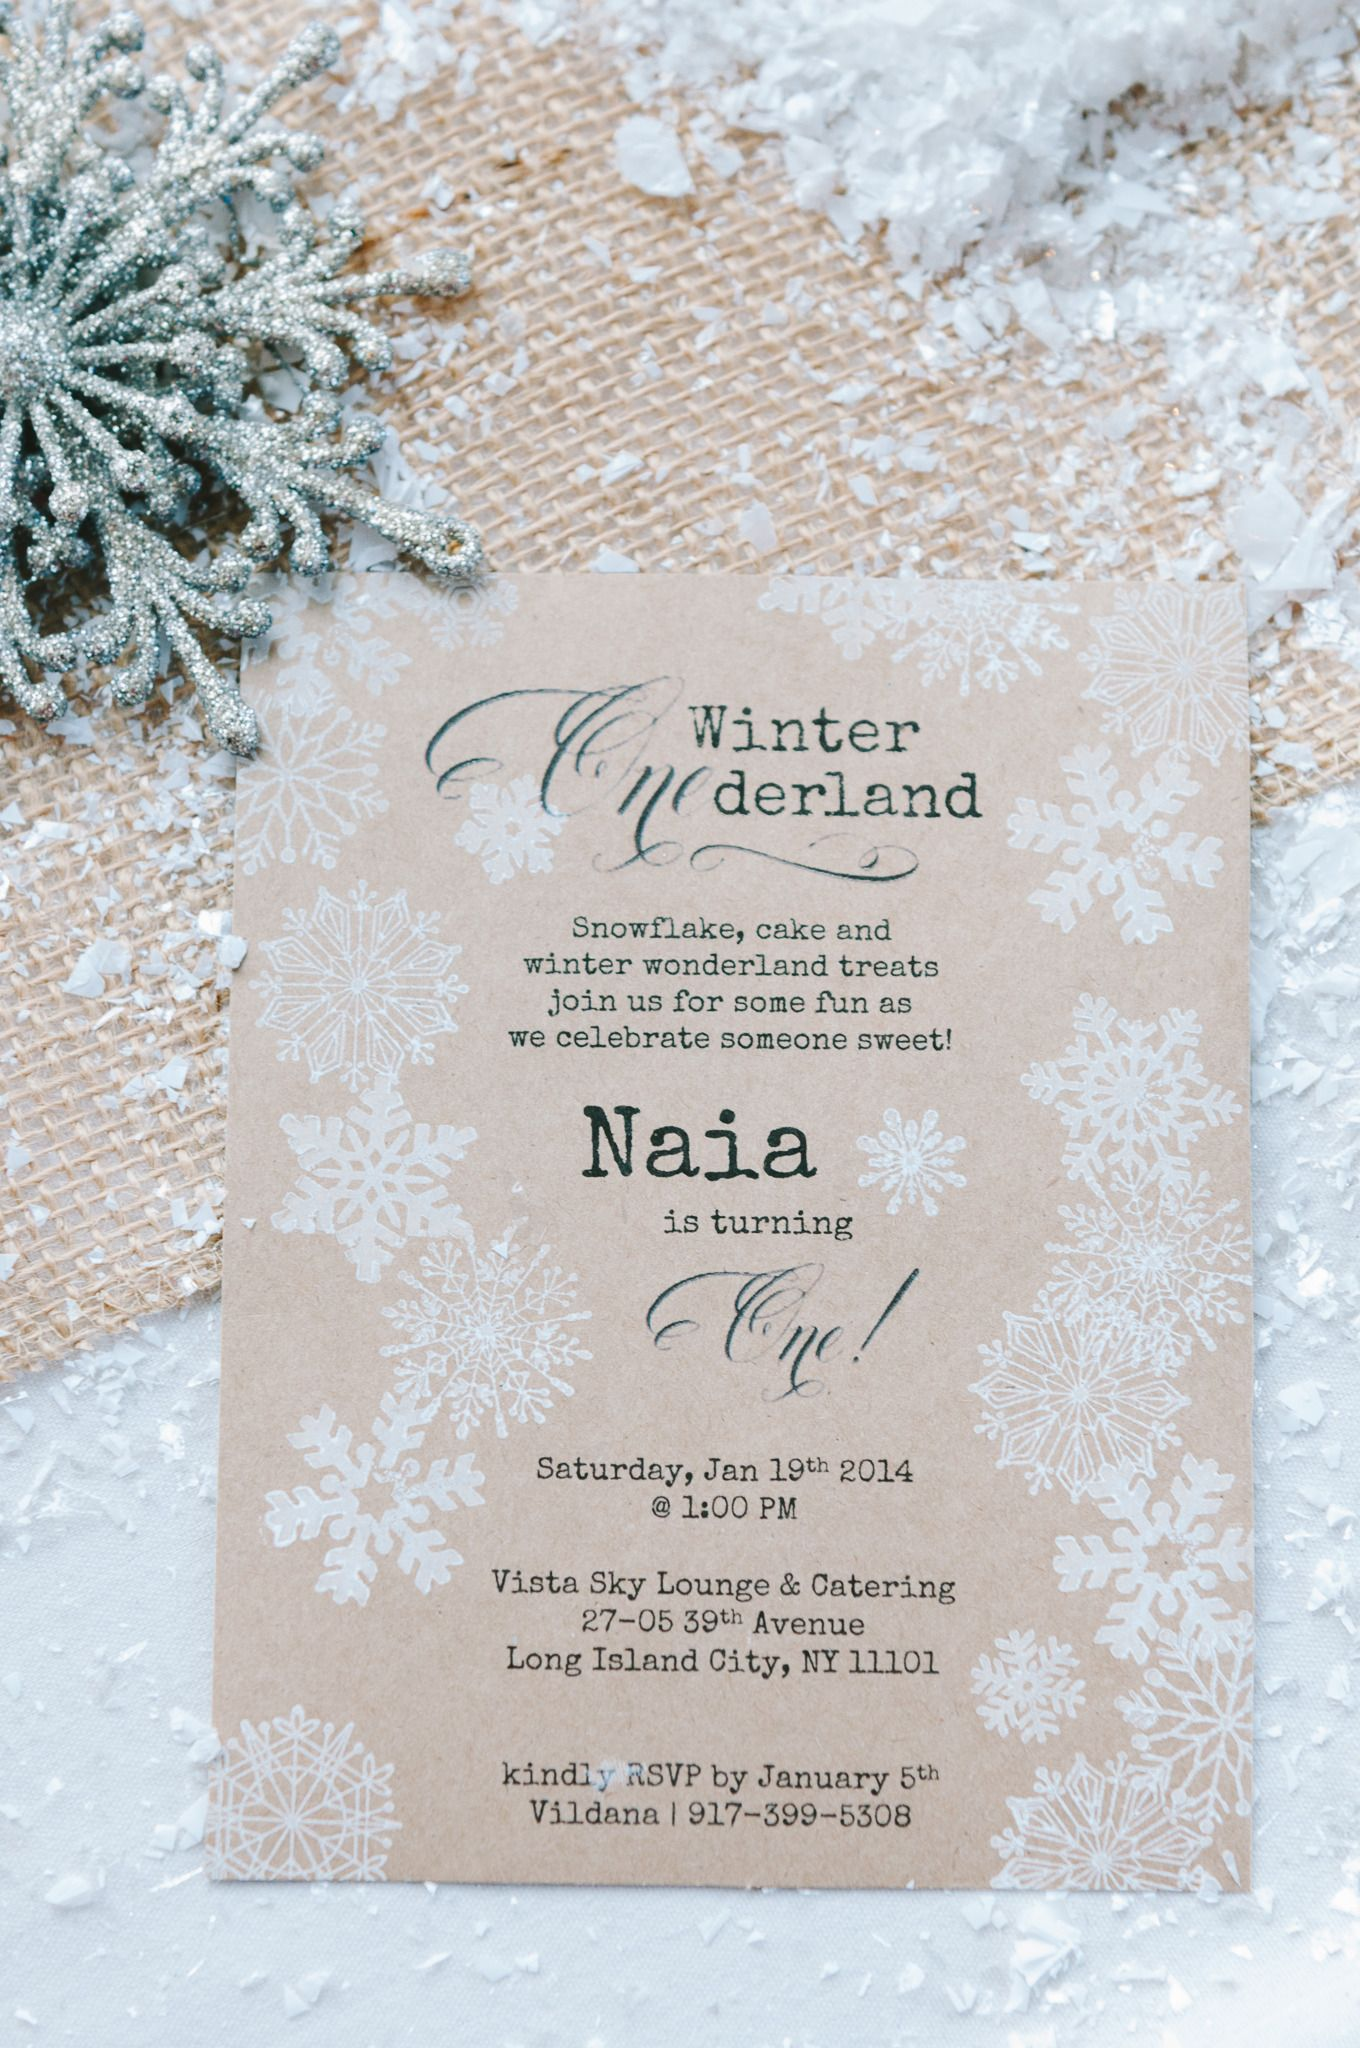 Winter Wonderland 1st Birthday Party | Party invitations, Birthdays ...